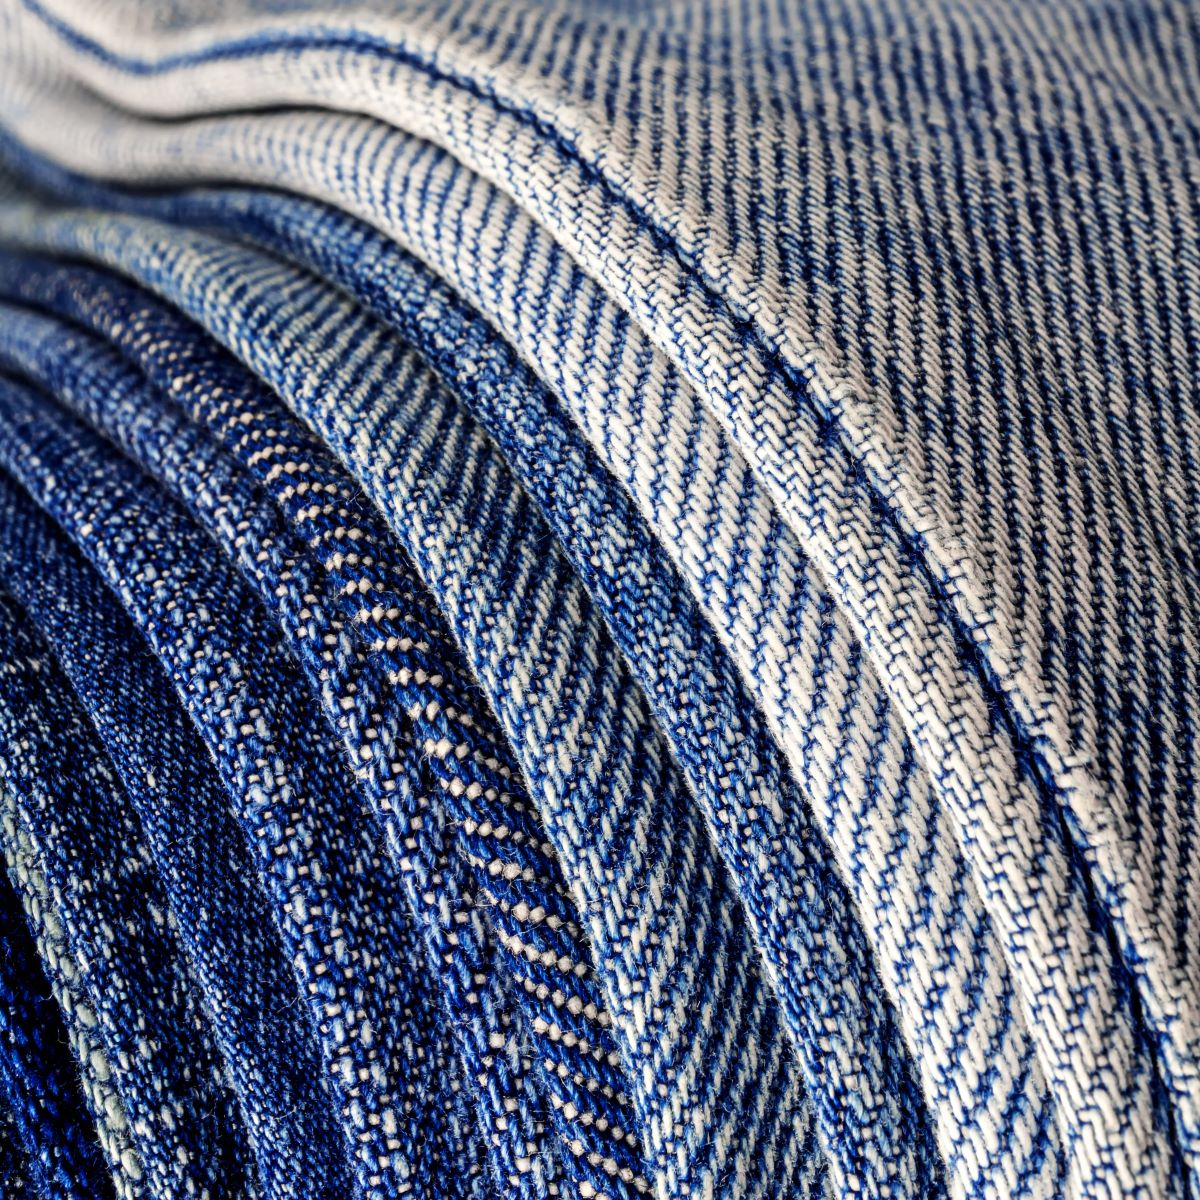 Vietnam-based PPJ will leverage technical support from Huntsman Textile Effects to enhance manufacturing across denim, twill and knit mills.